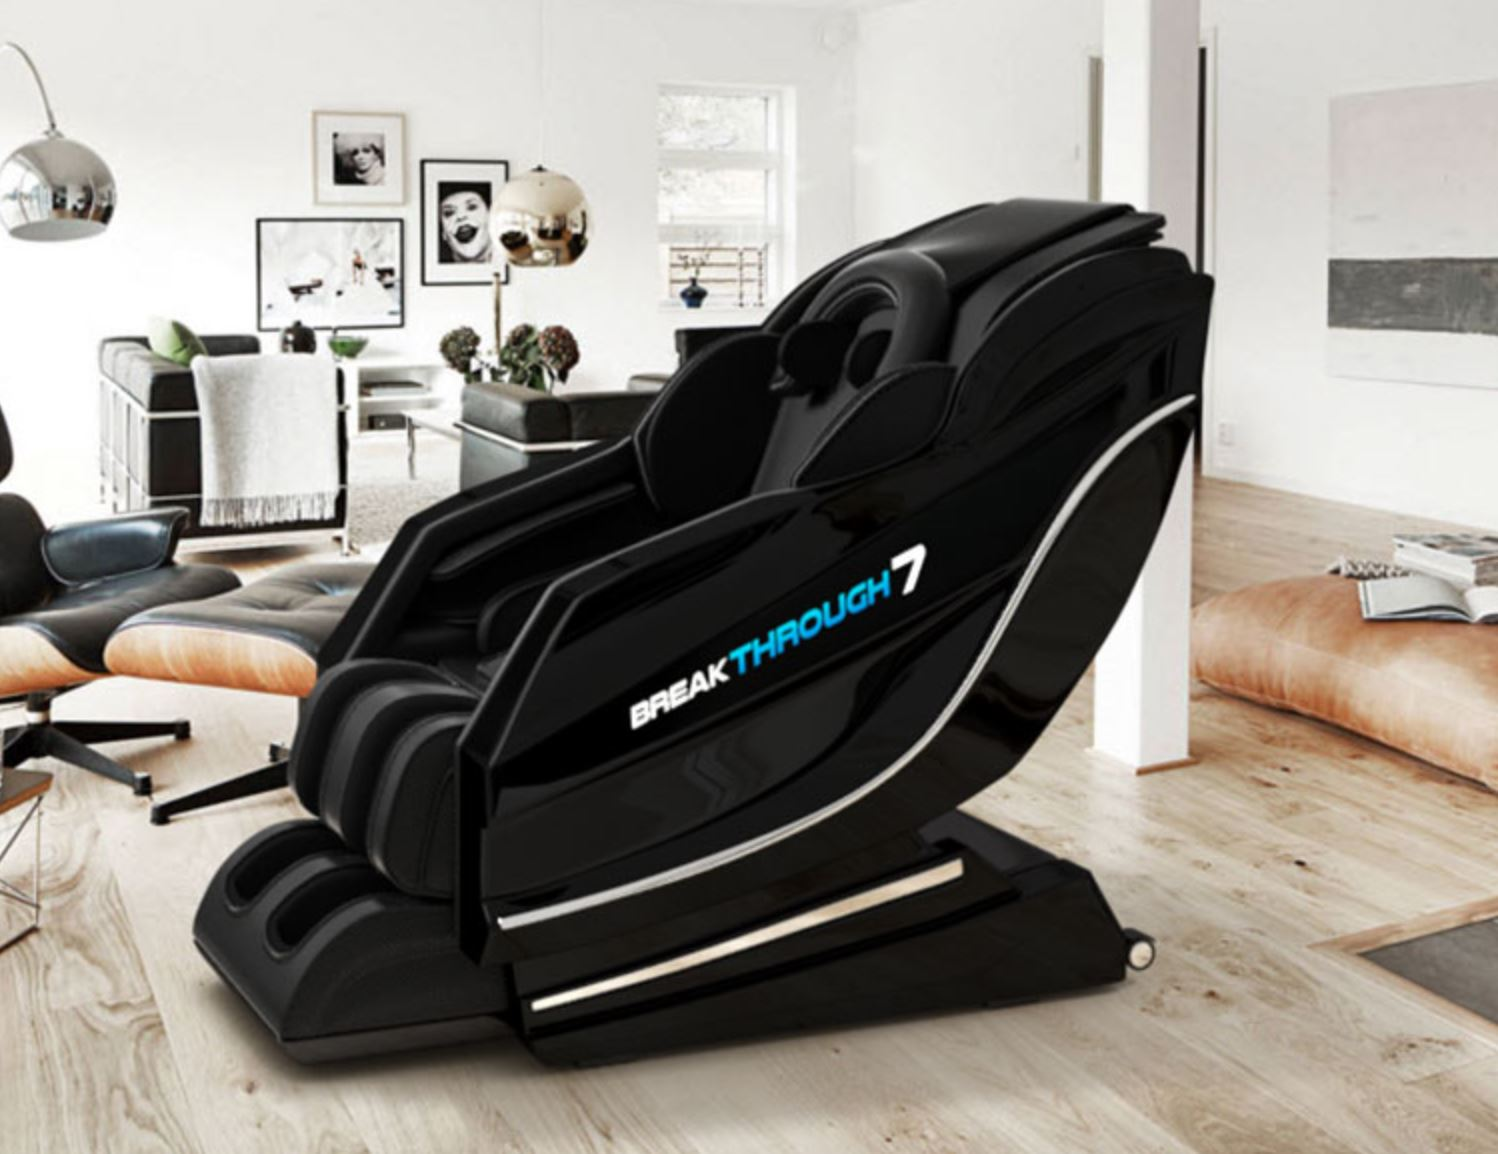 Medical Breakthrough Massage Chair 7 | No Taxes + Free ...